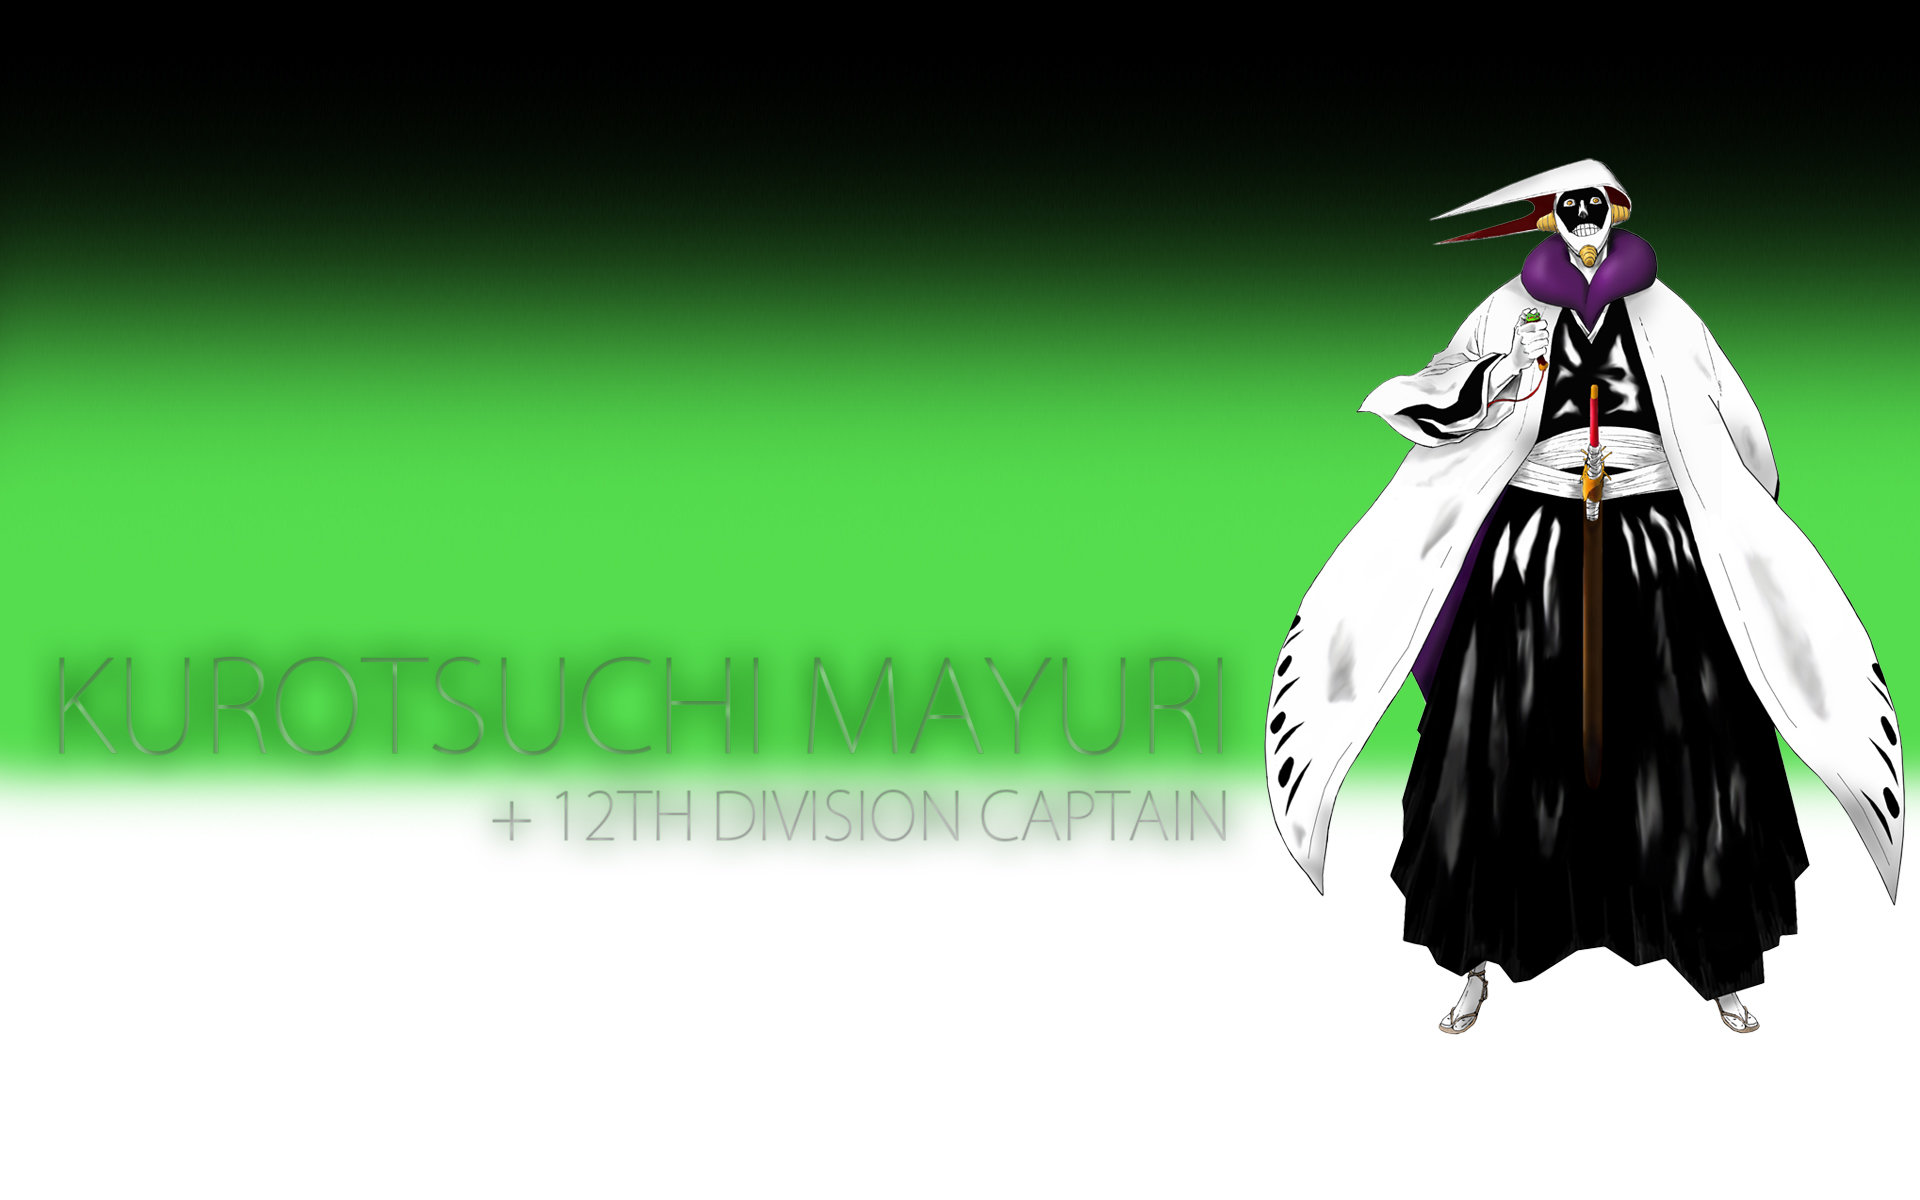 High resolution Mayuri Kurotsuchi hd 1920x1200 background ID:417009 for PC